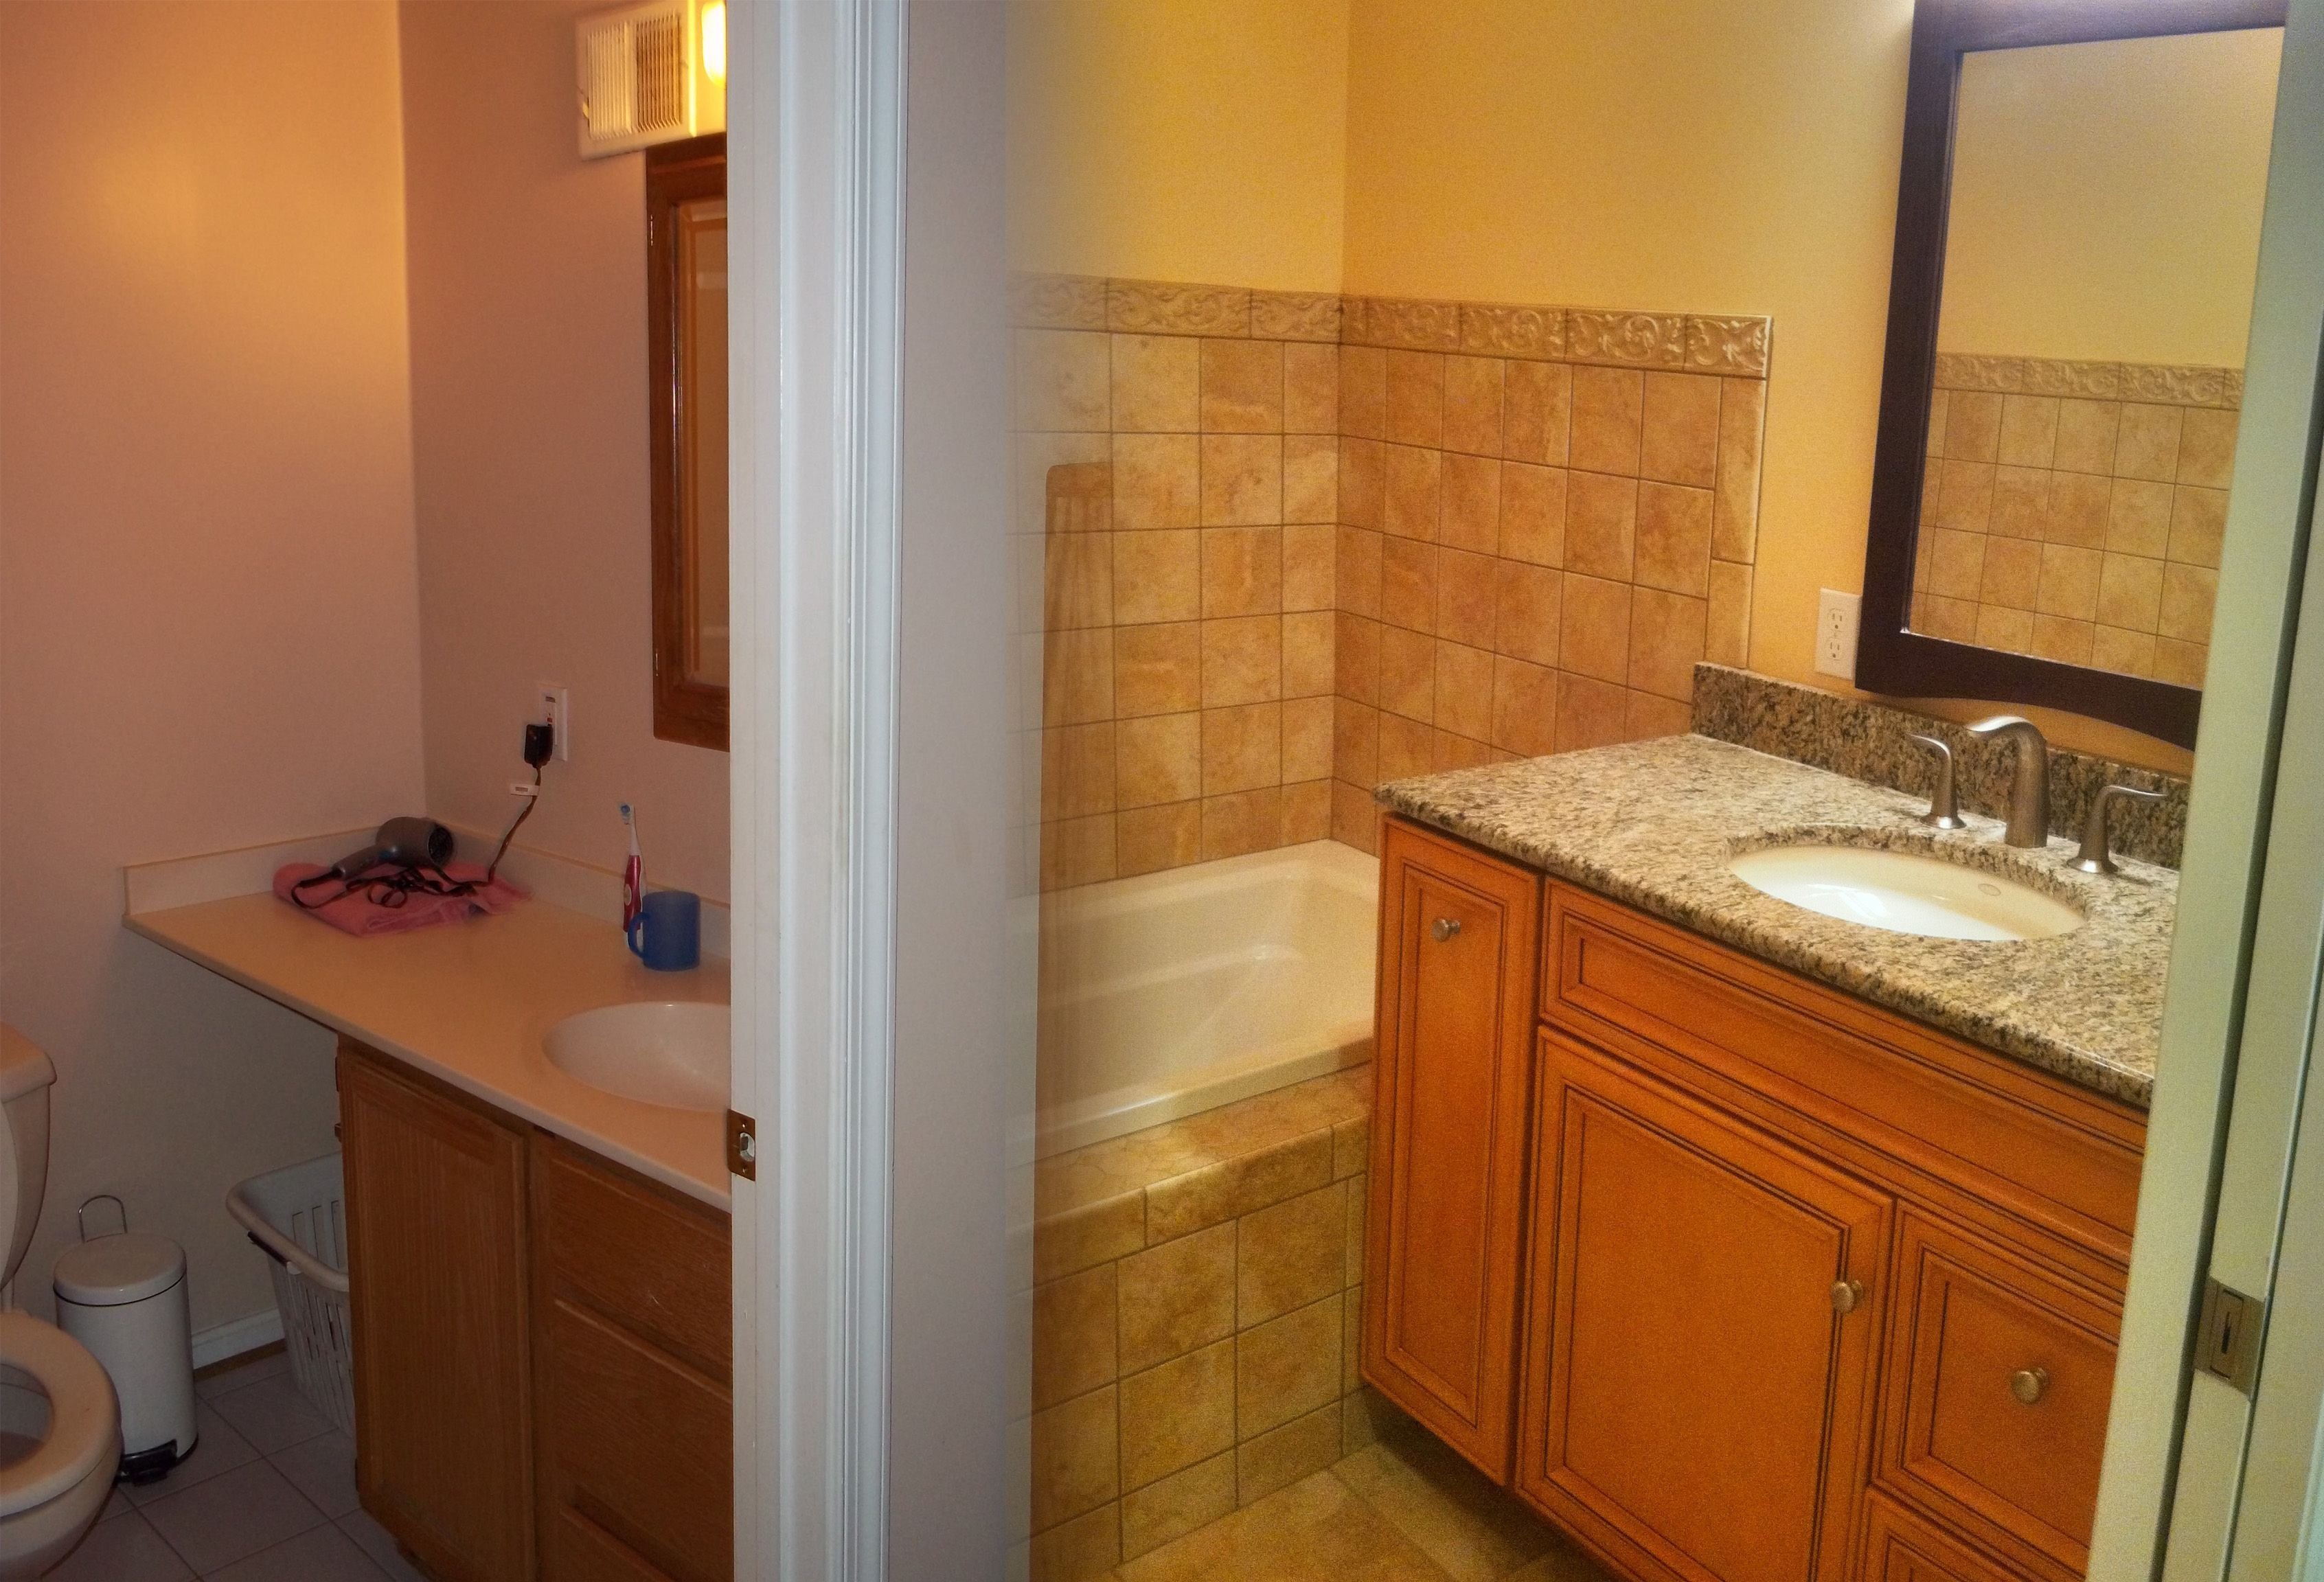 Bathroom Remodel Contractors 1960s bathroom renovation before and after |  , & bathroom